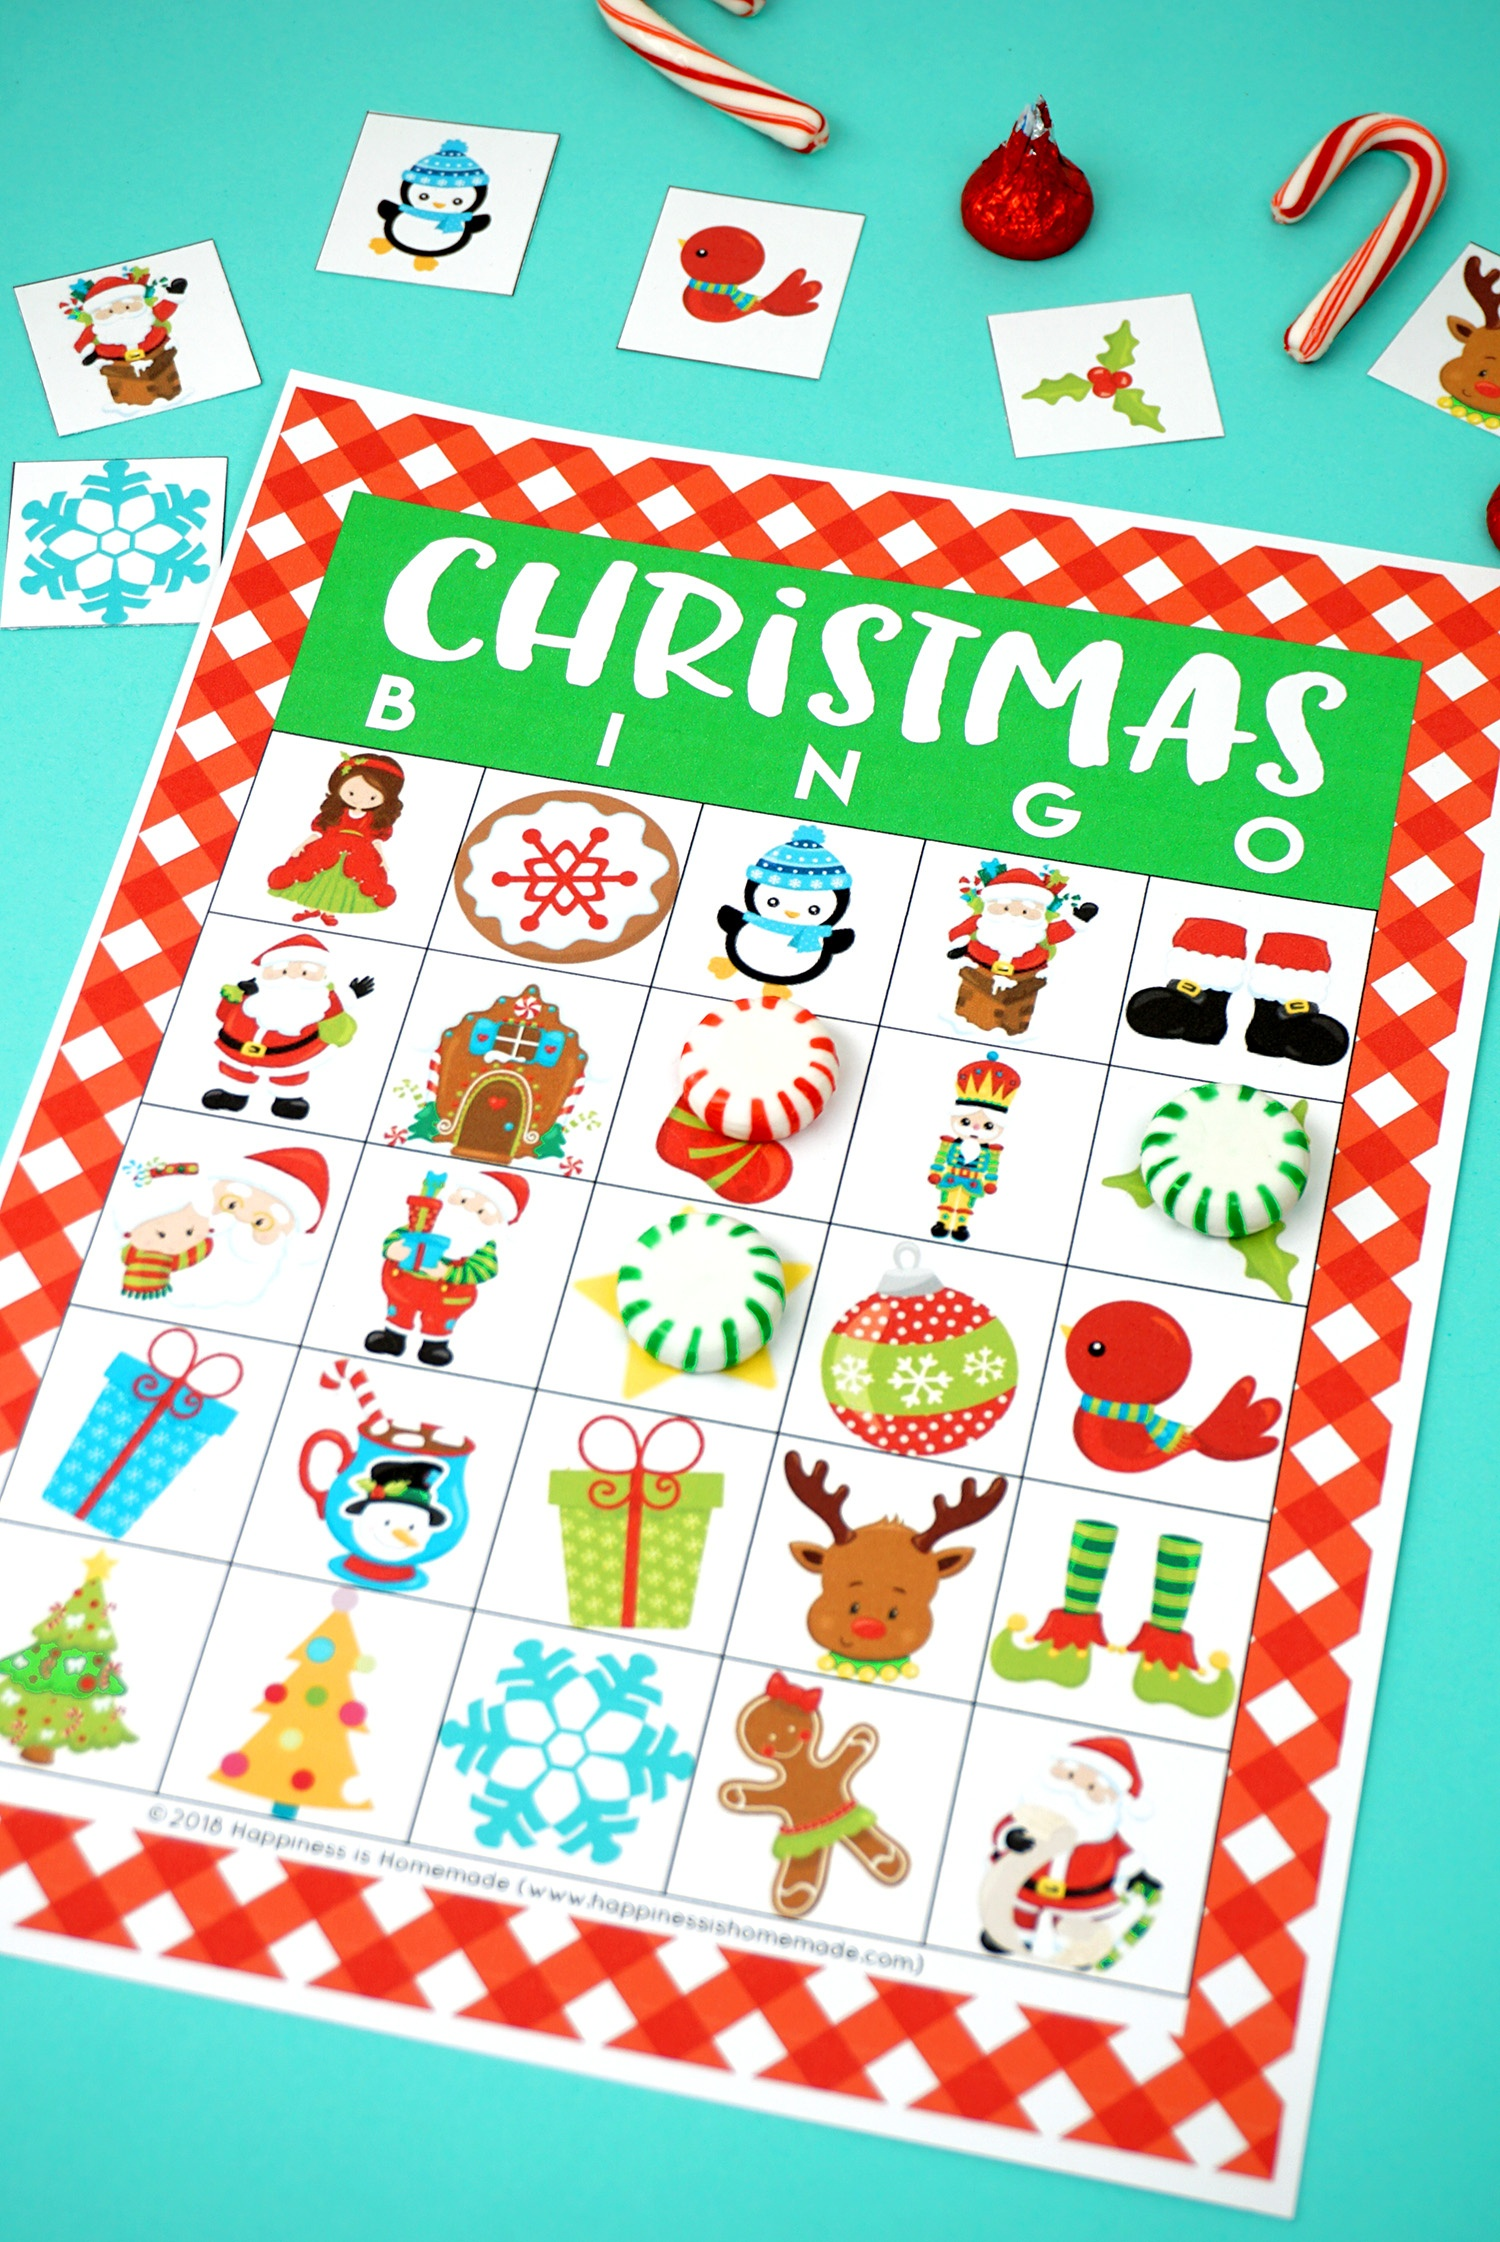 Printable Christmas Bingo Game - Happiness Is Homemade - Free Printable Christmas Bingo Cards